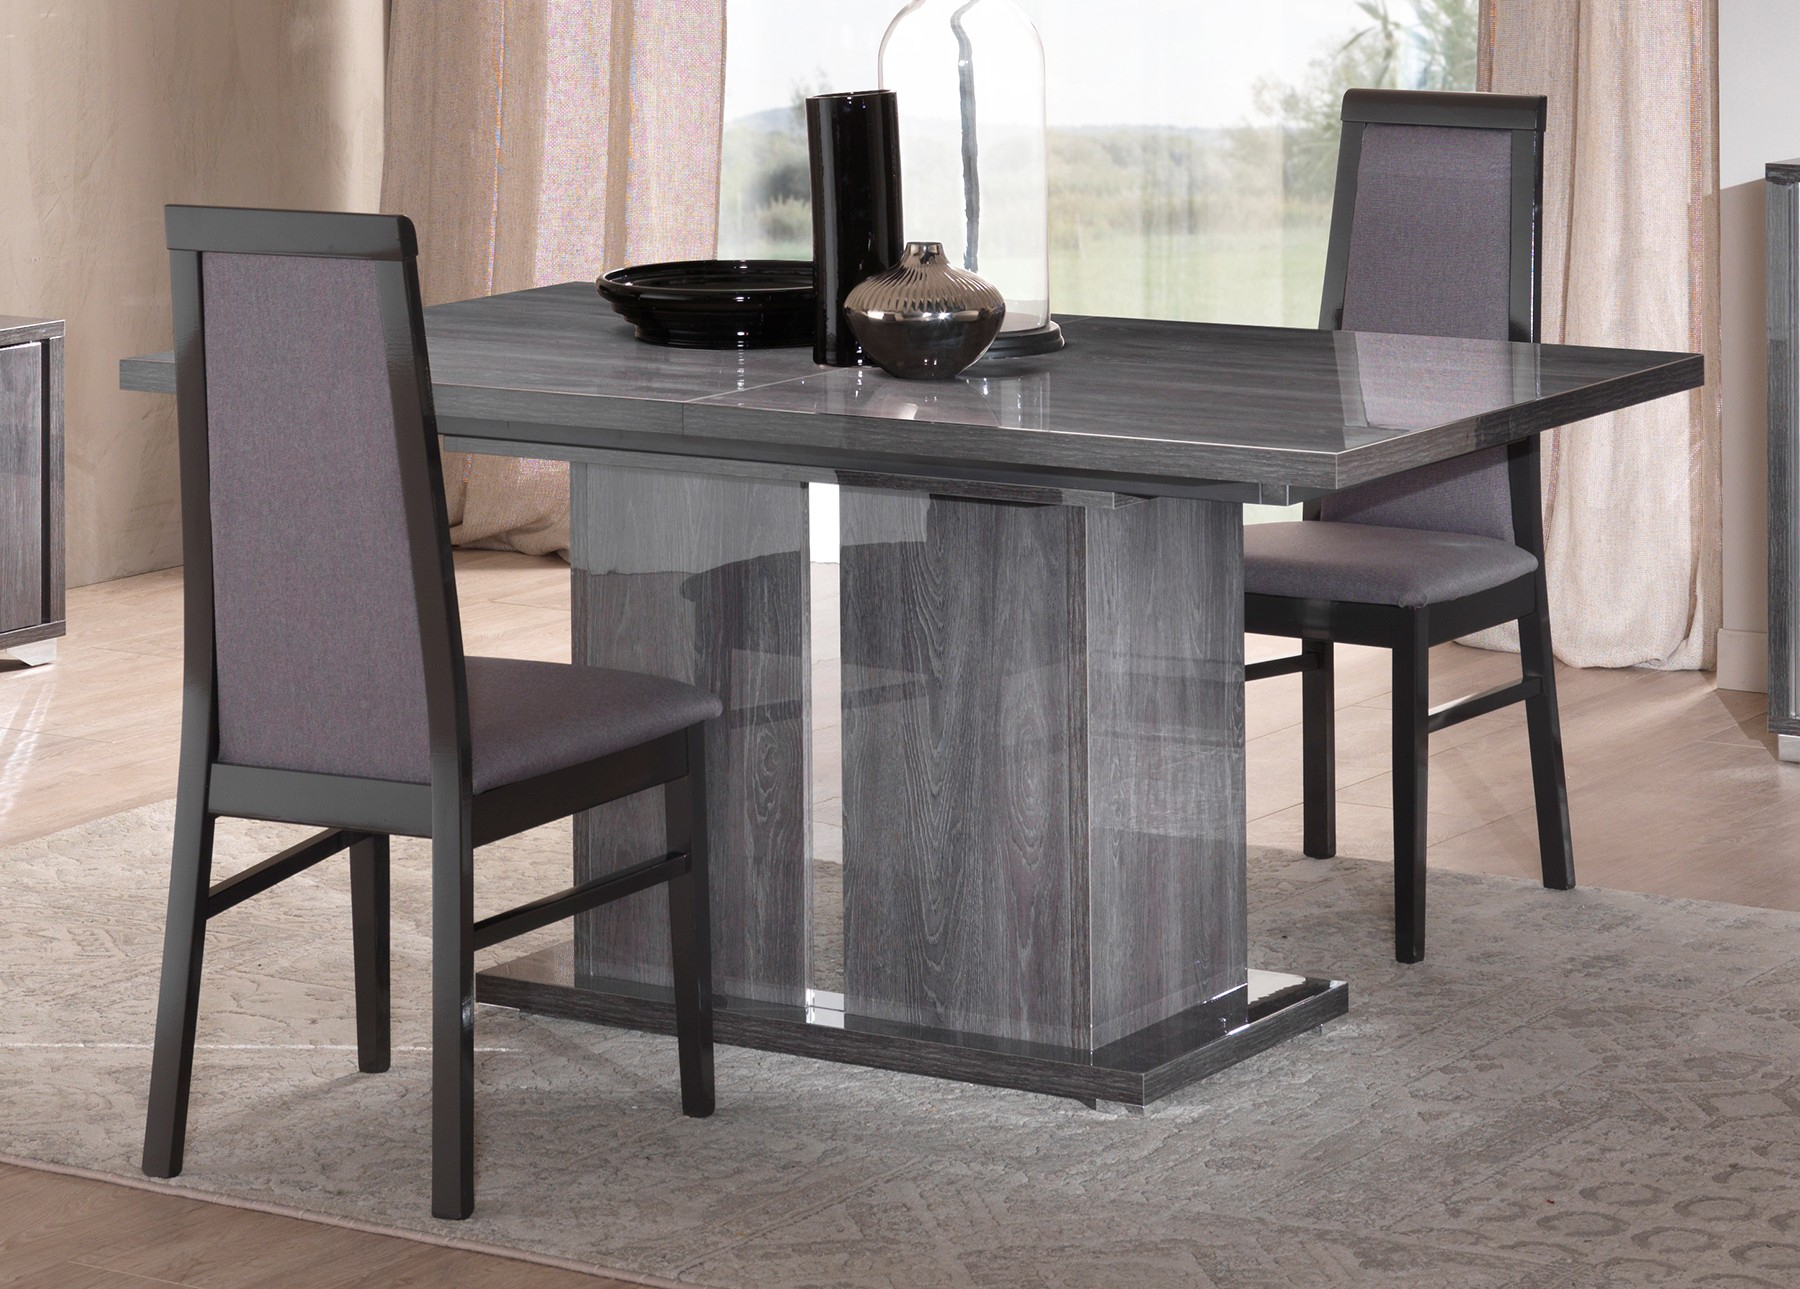 San Martino Armony Grey Extending Dining Table Pertaining To Latest Martino Dining Tables (View 12 of 25)